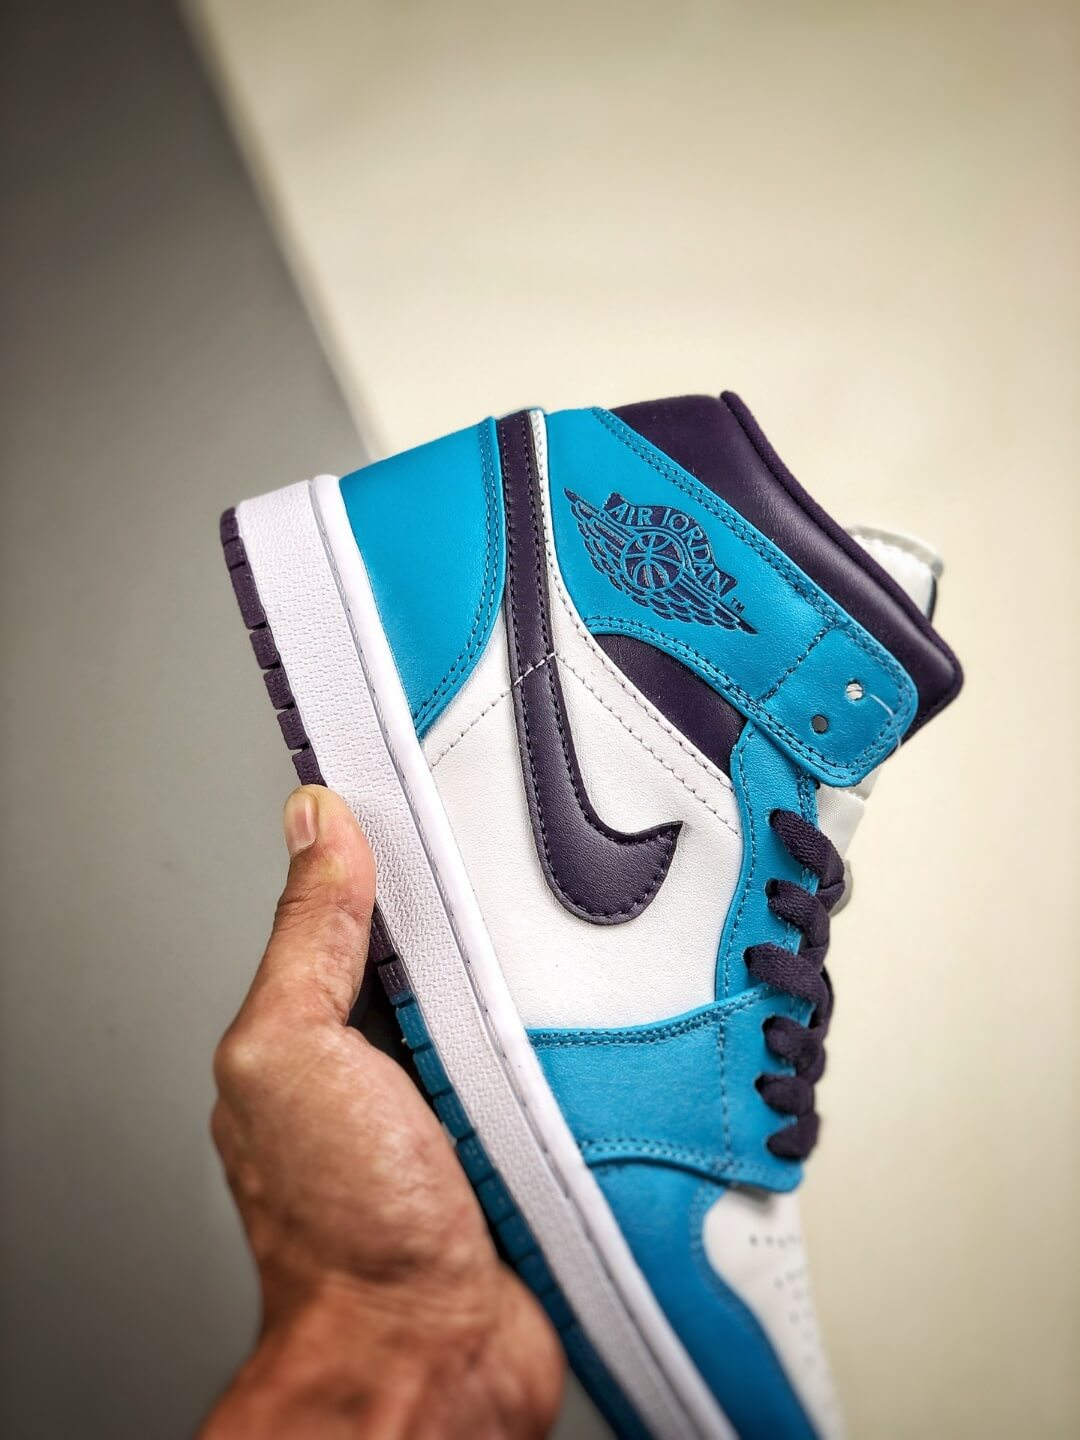 The Air Jordan 1 Mid Hornets Blue Lagoon and Grand Purple Leather Upper Jordan Wings Logo Repsneakers 05